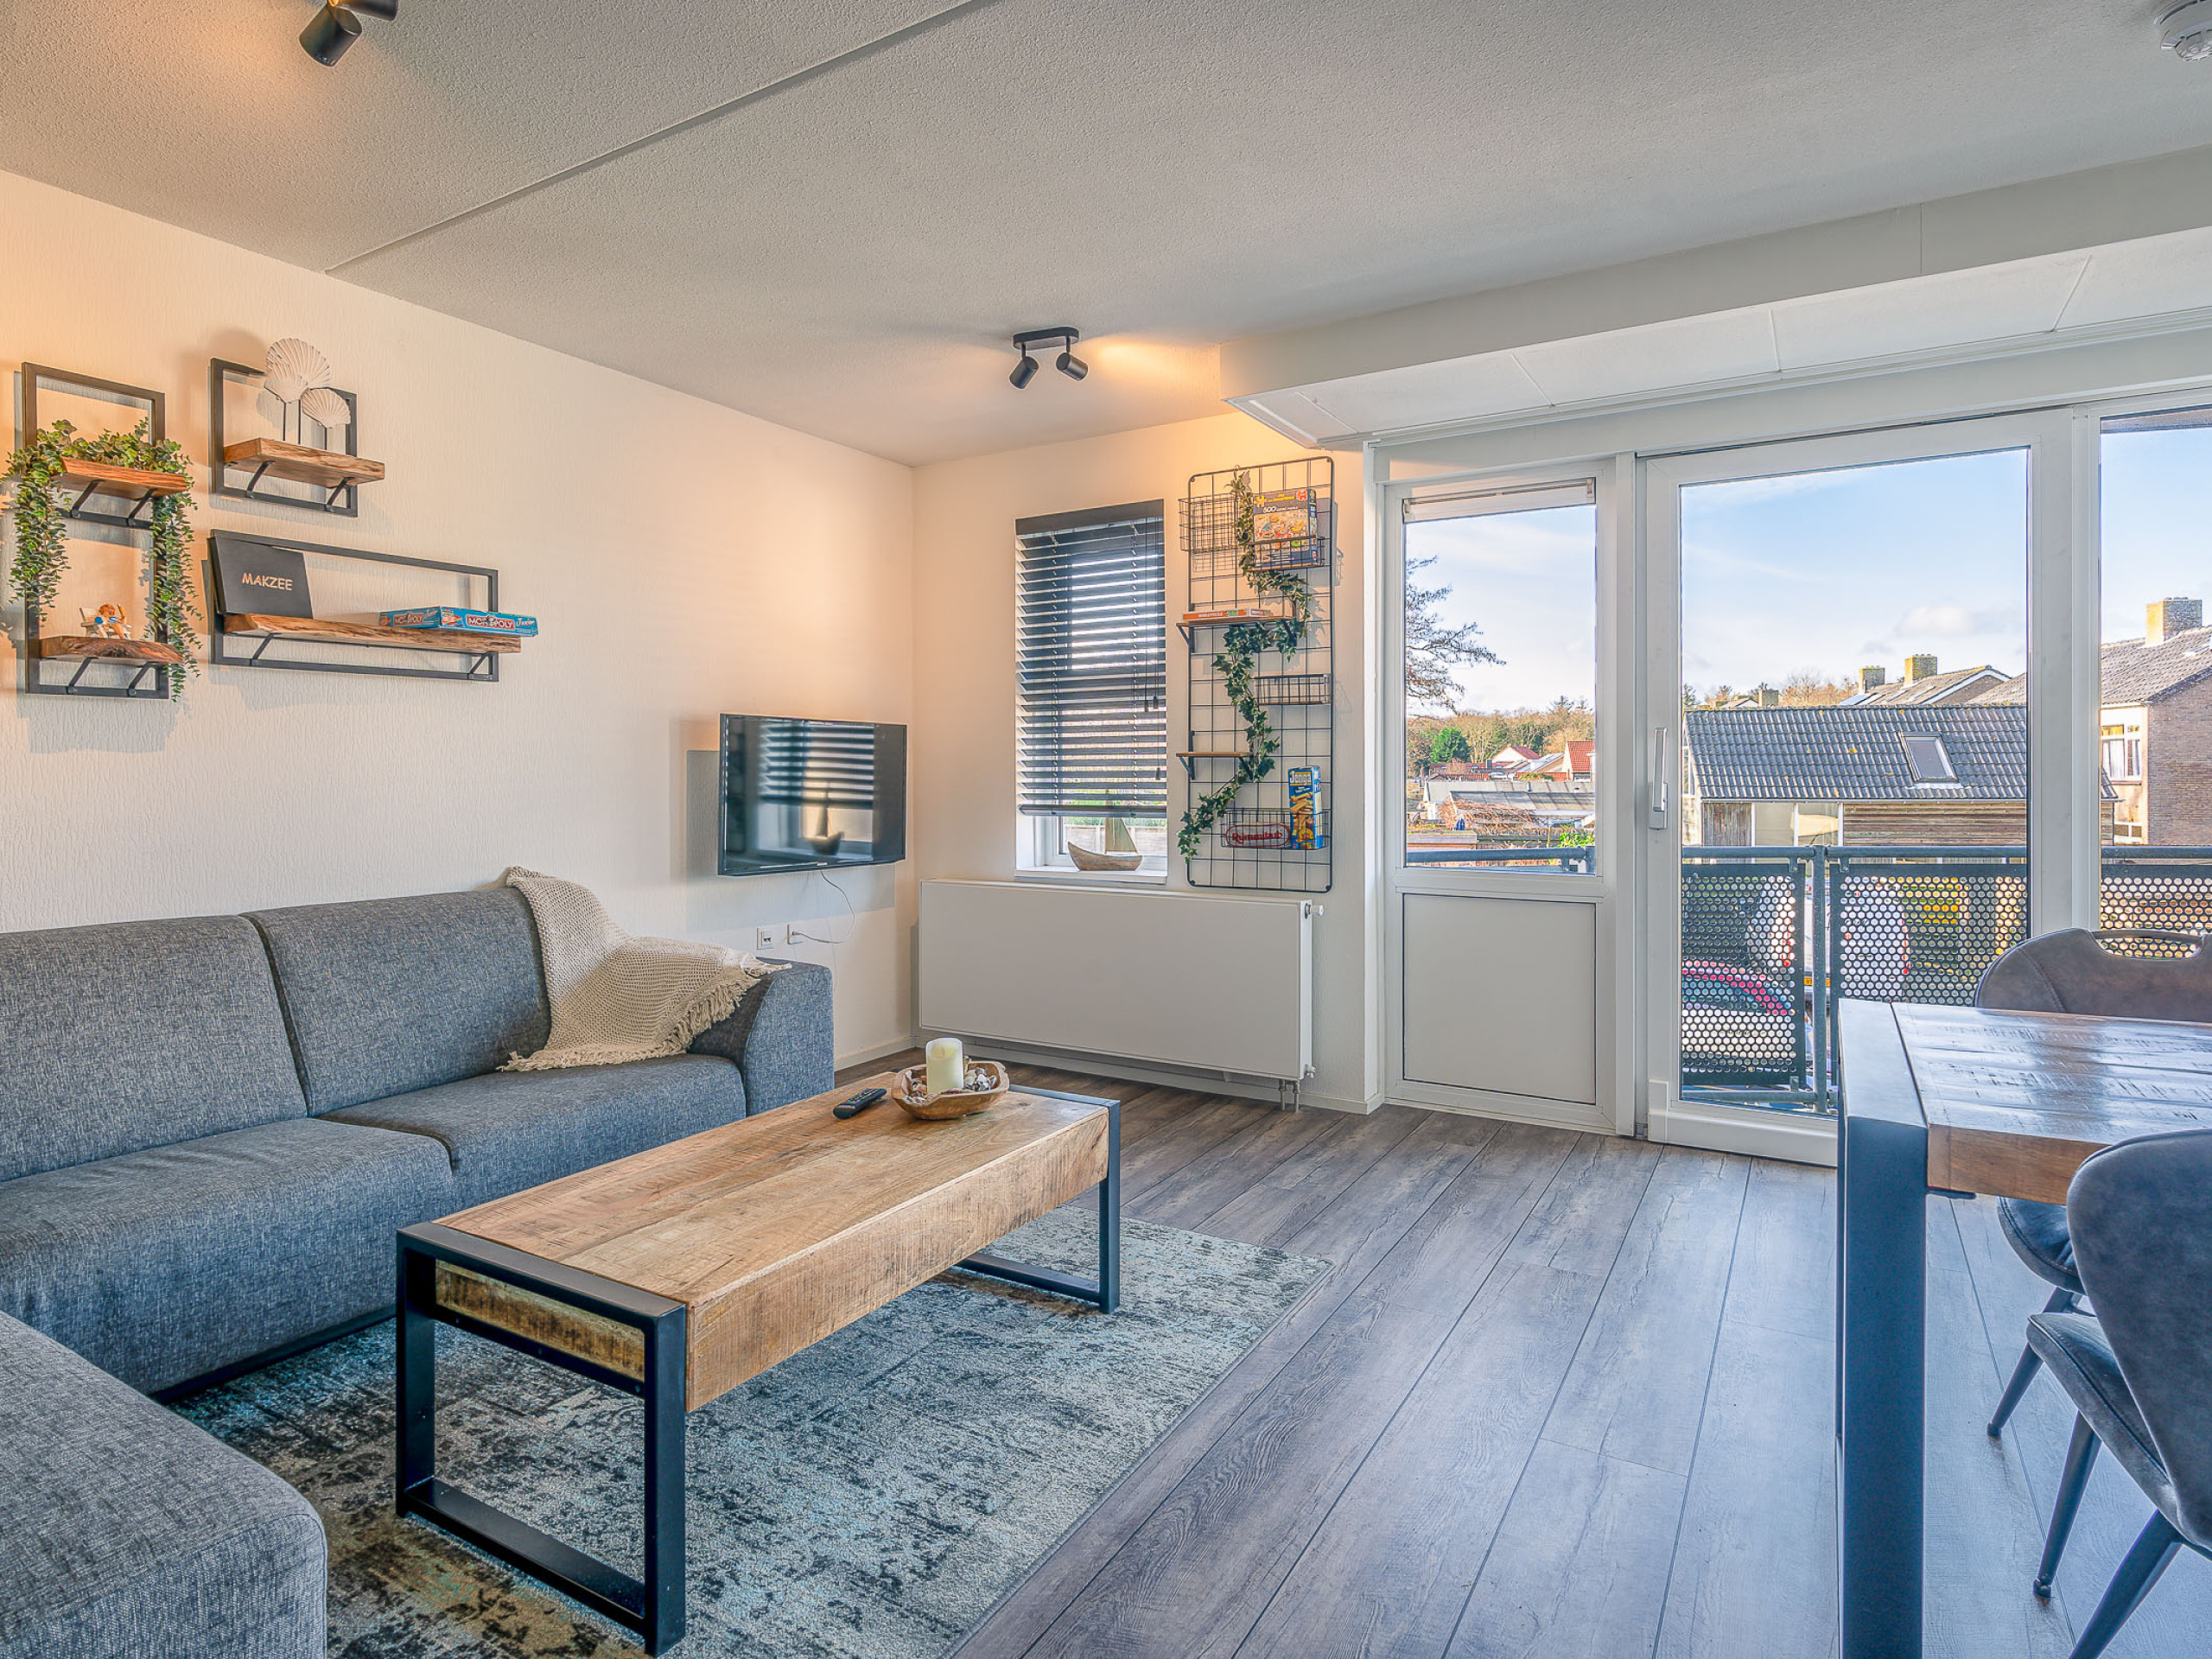 Lovely apartment in De Koog with a central location